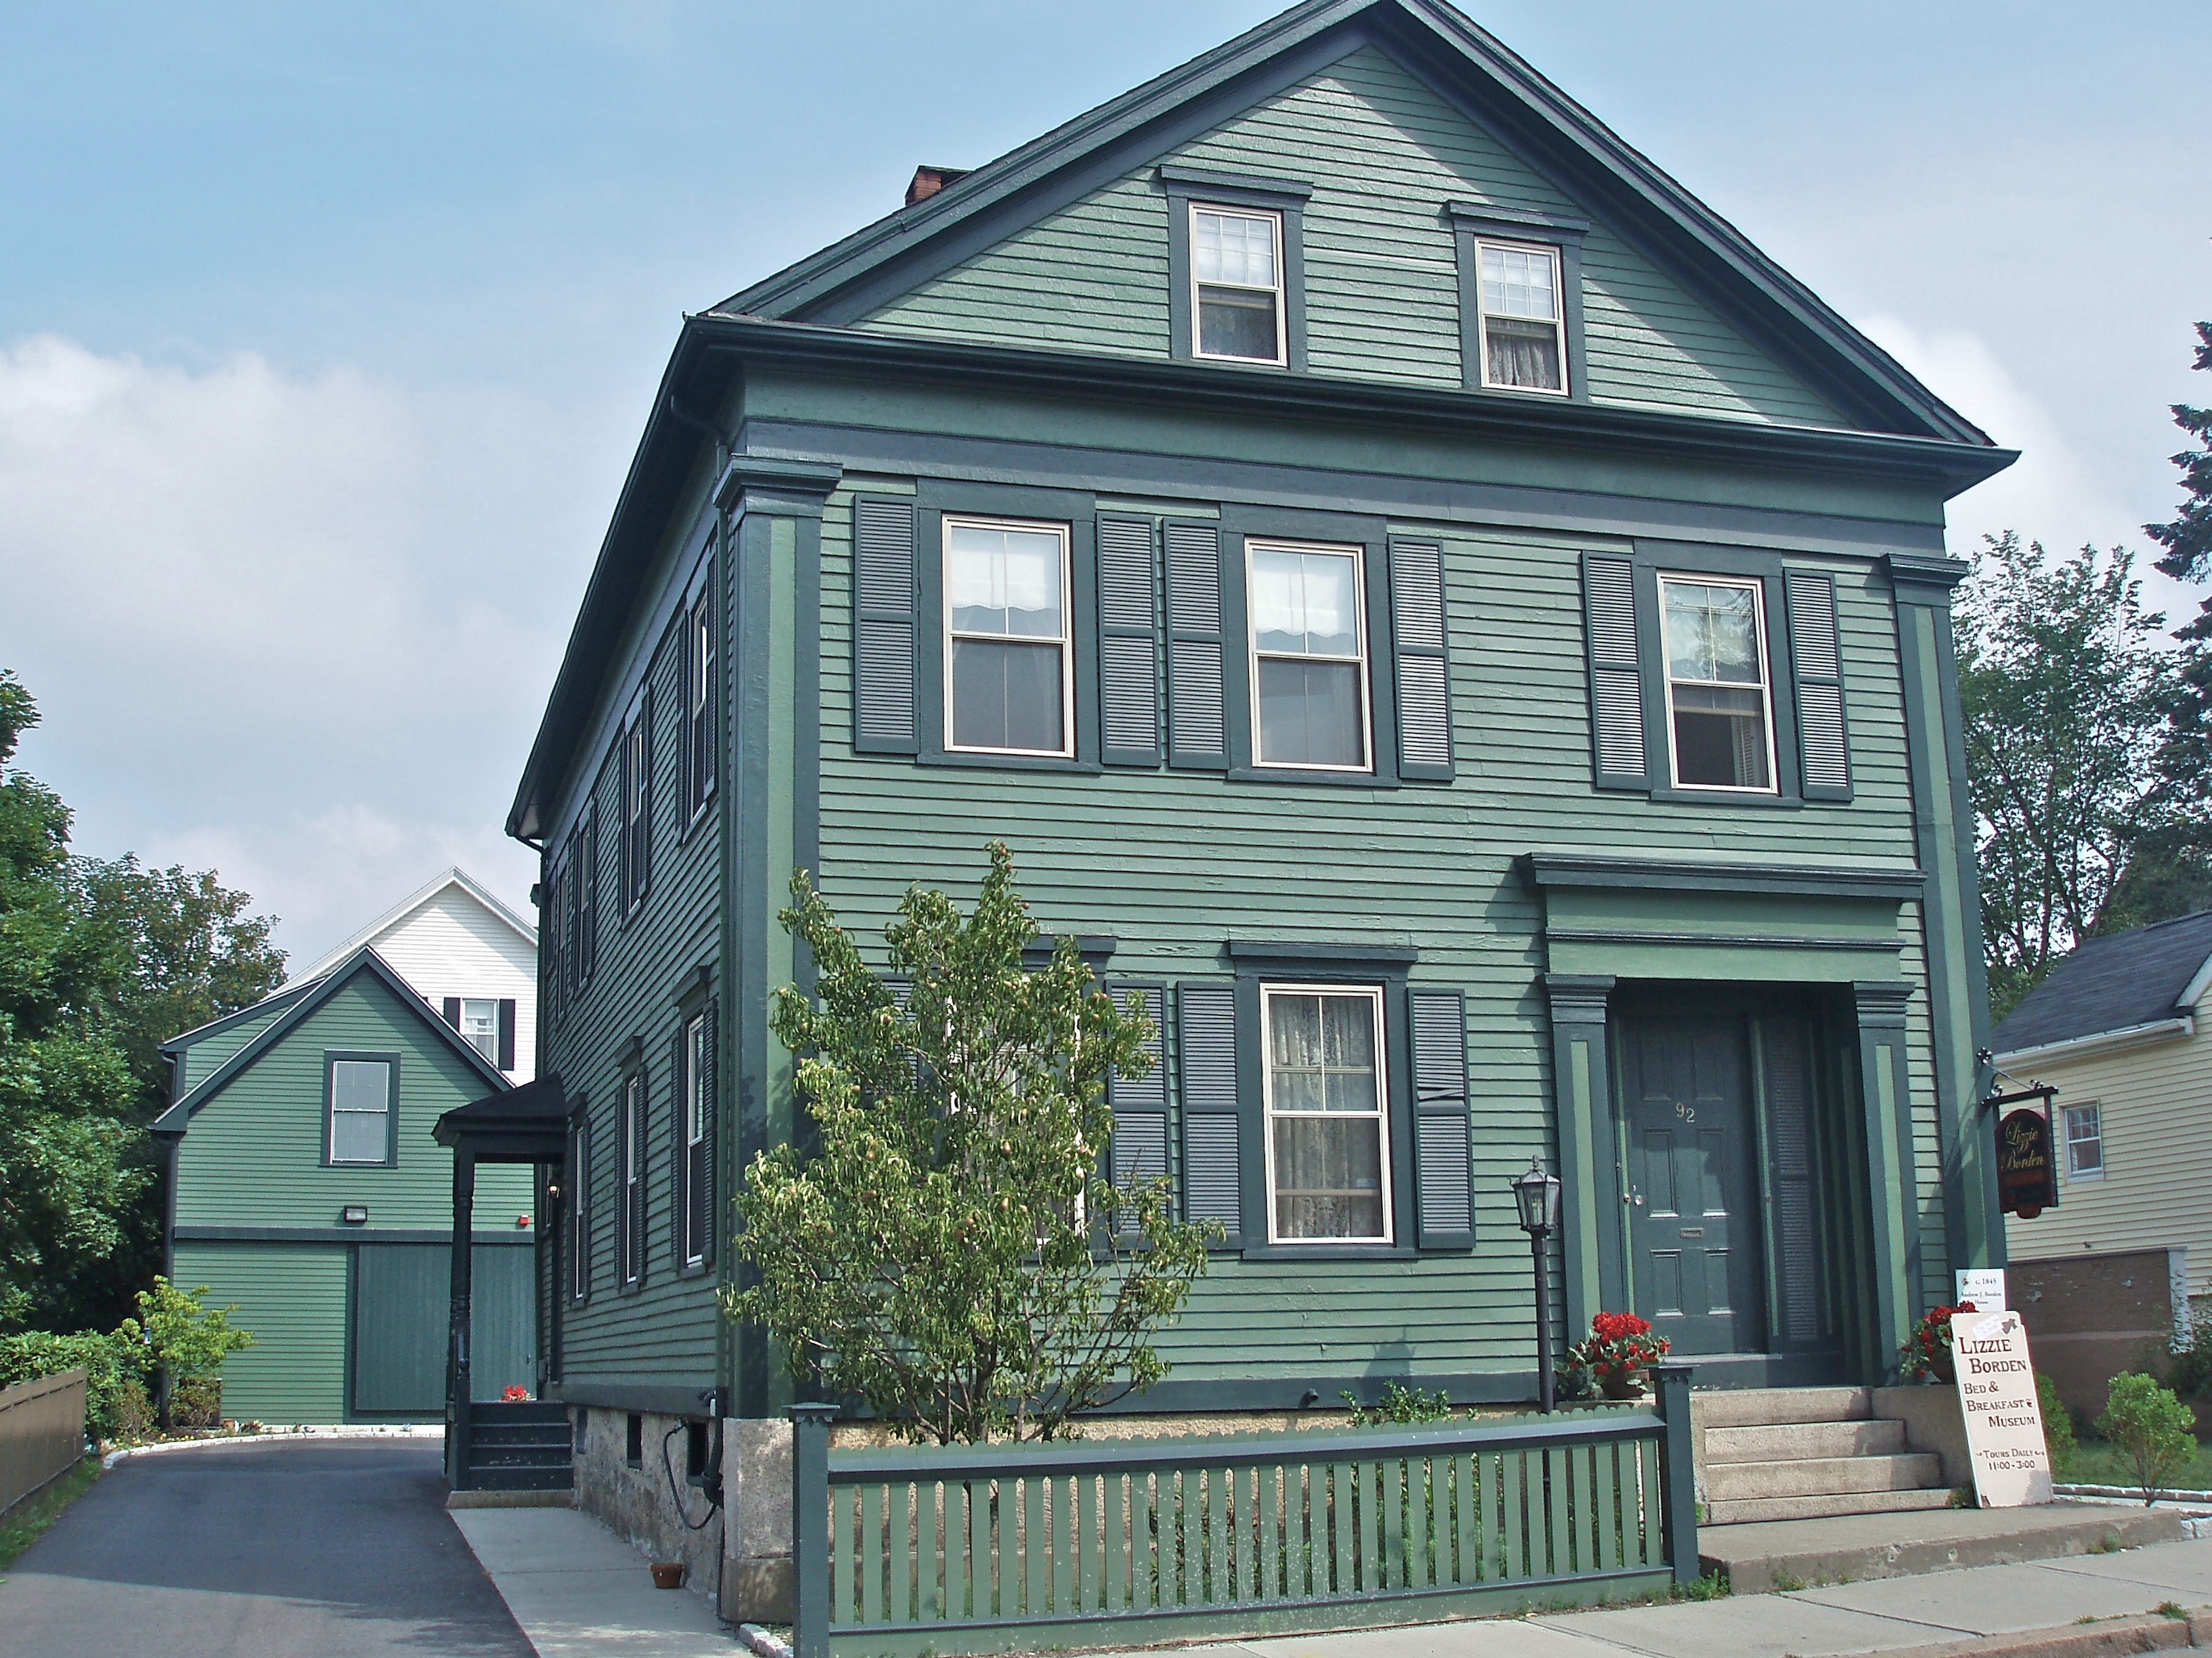 Image result for pictures of the lizzie borden house